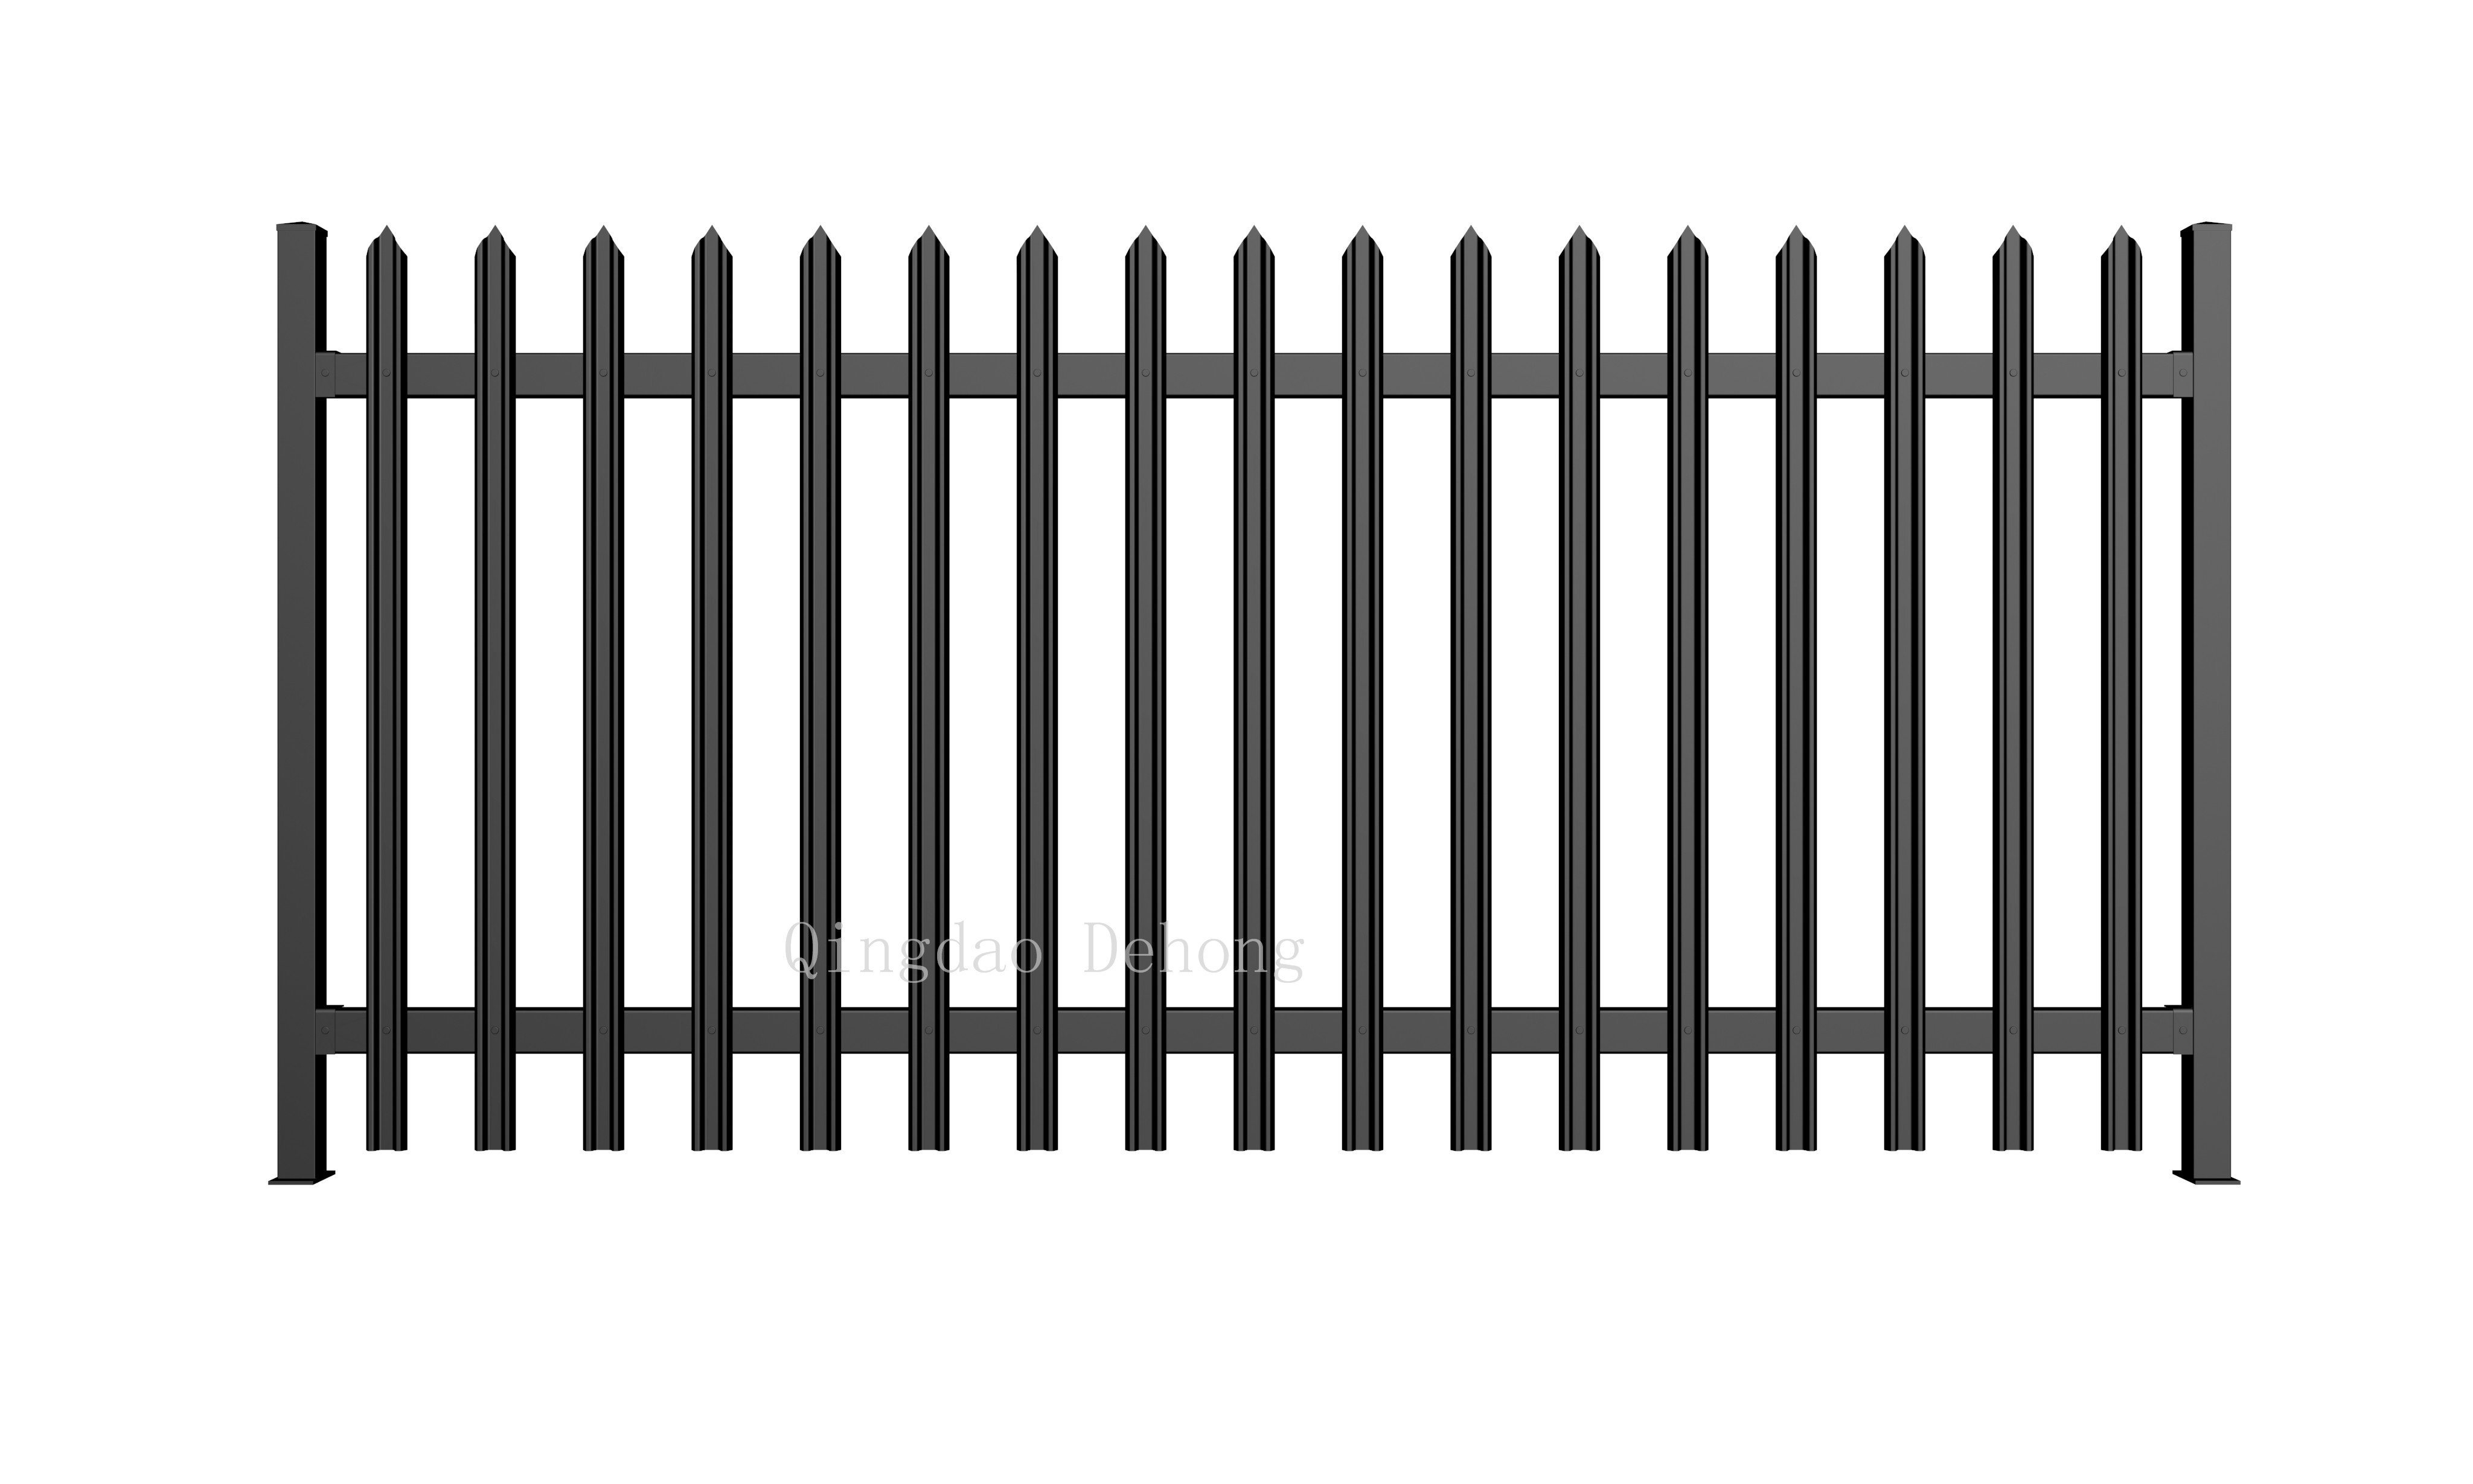 China High Quality Wrought Iron Fences China Ornamental Farm Security Fences Hot Selling Metal Fence